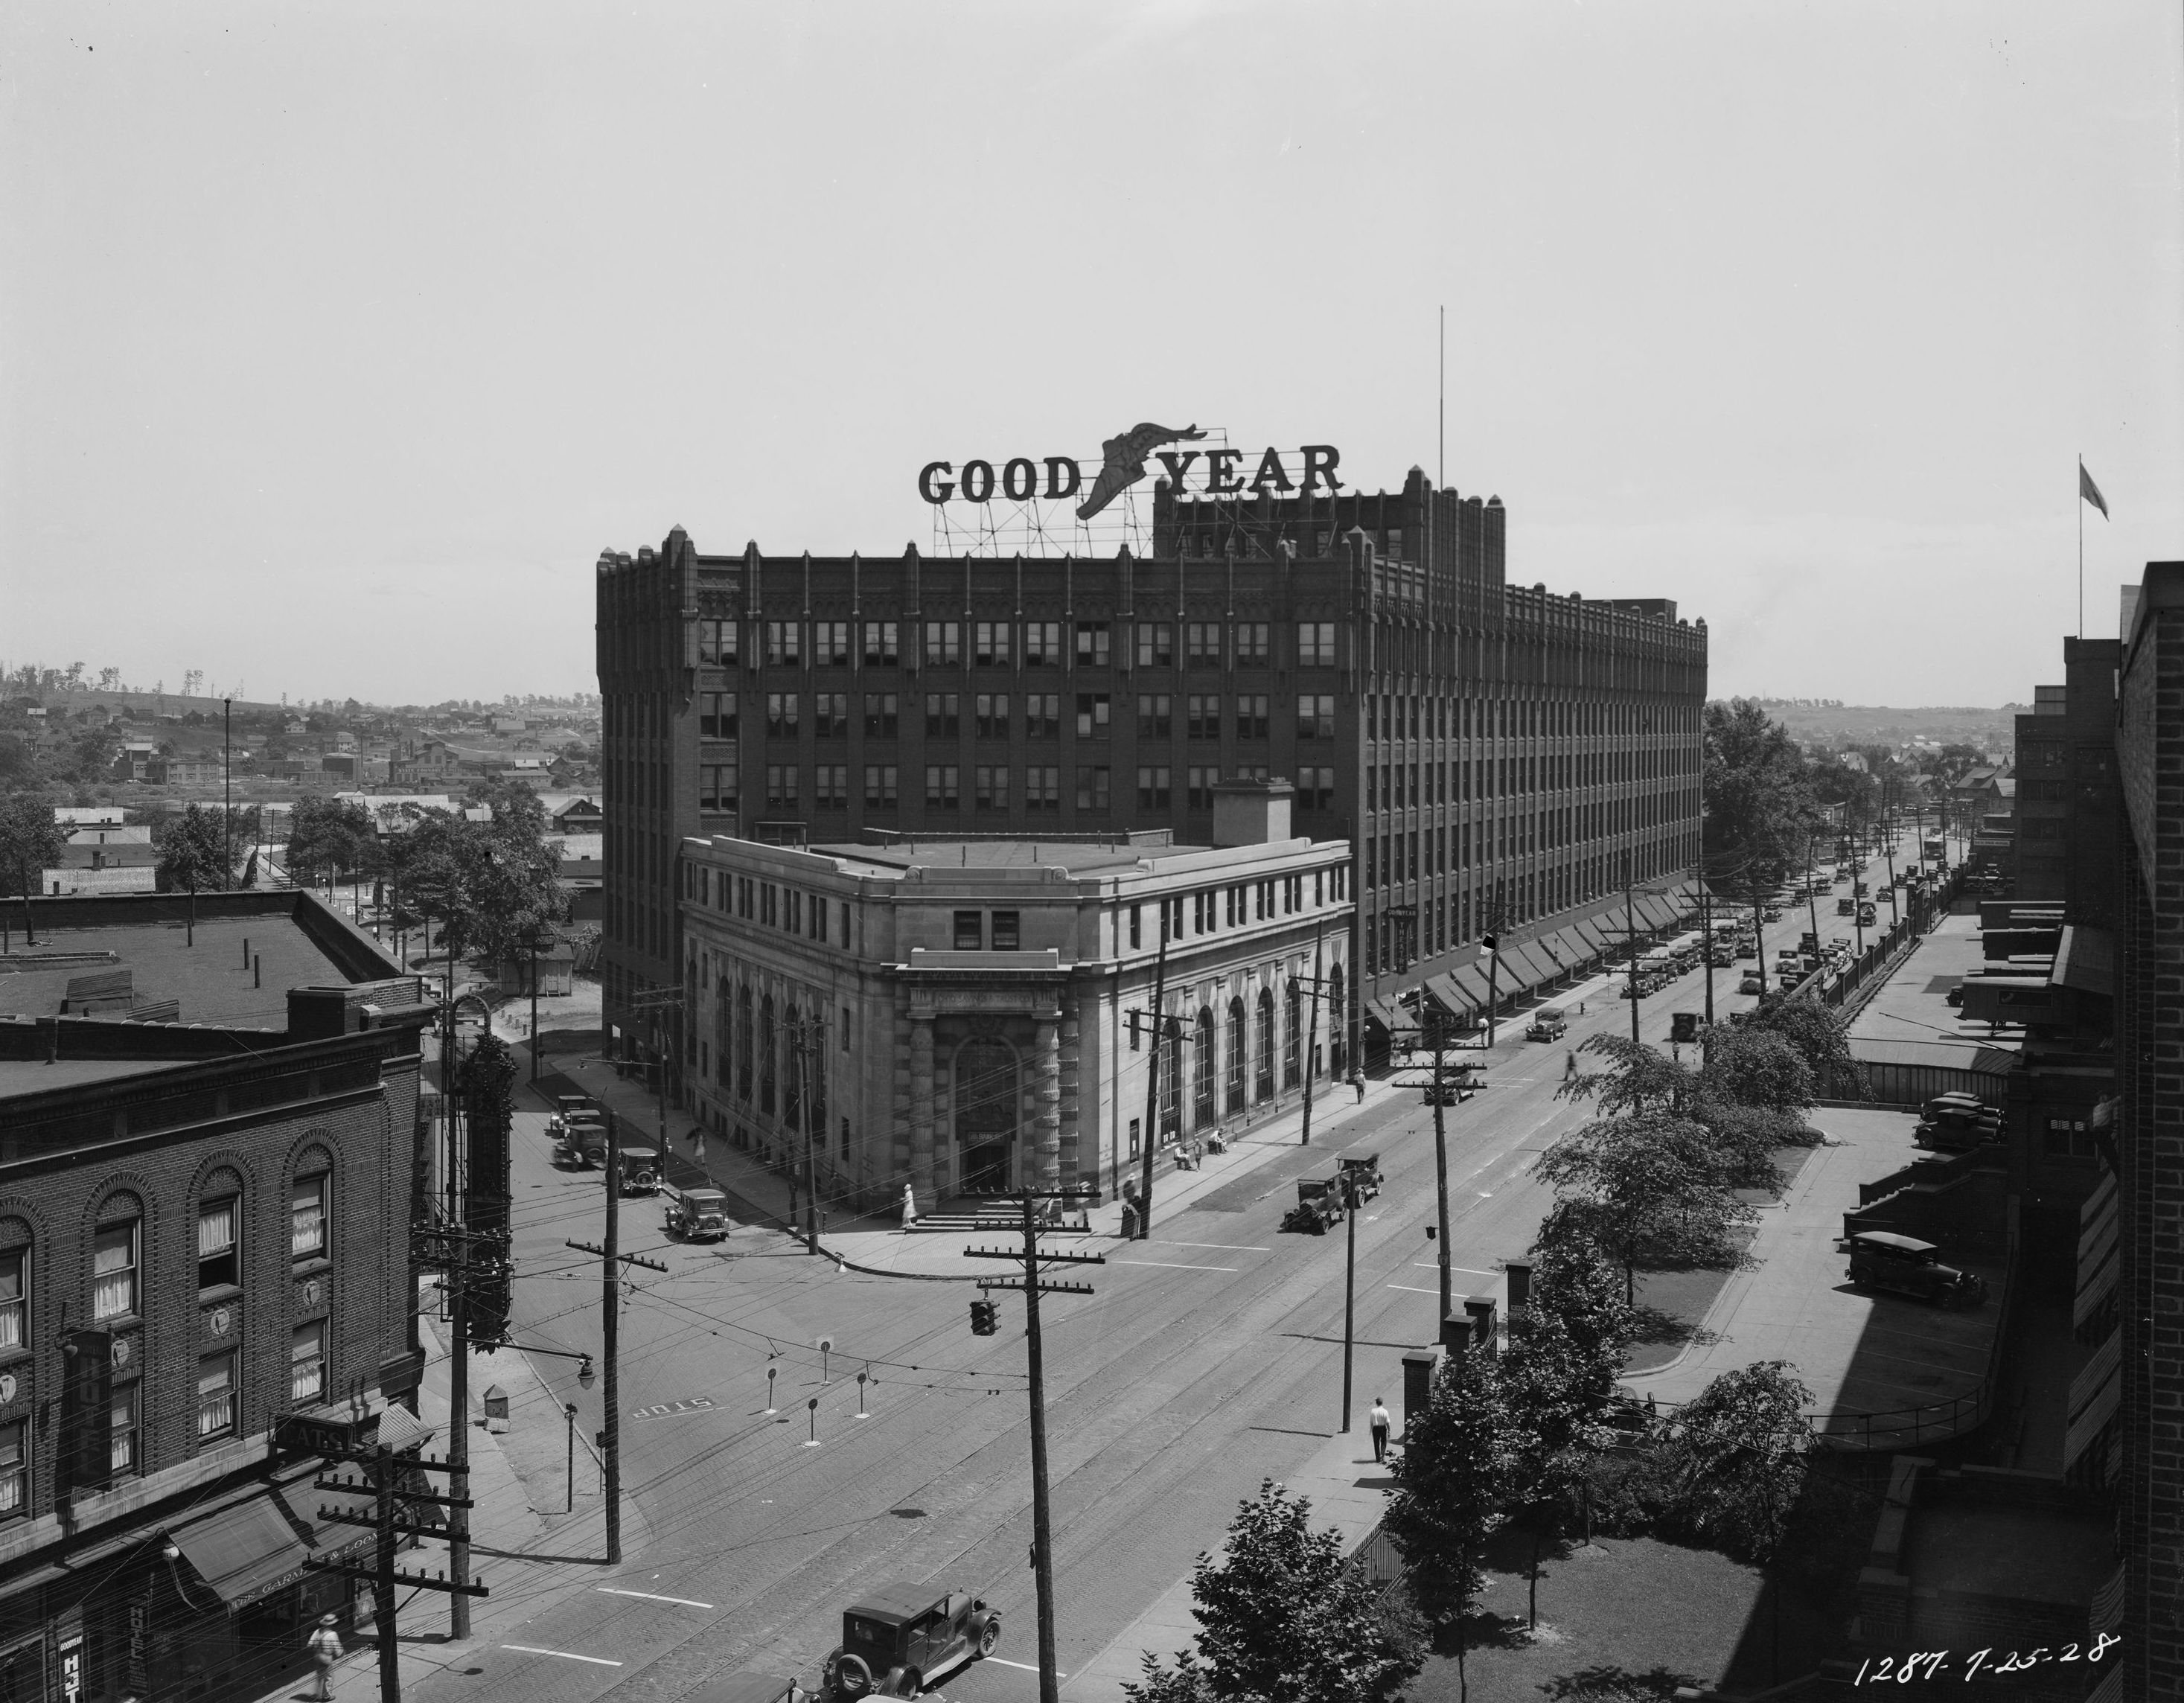 Black and White Photo of Large Goodyear Building on a street corner